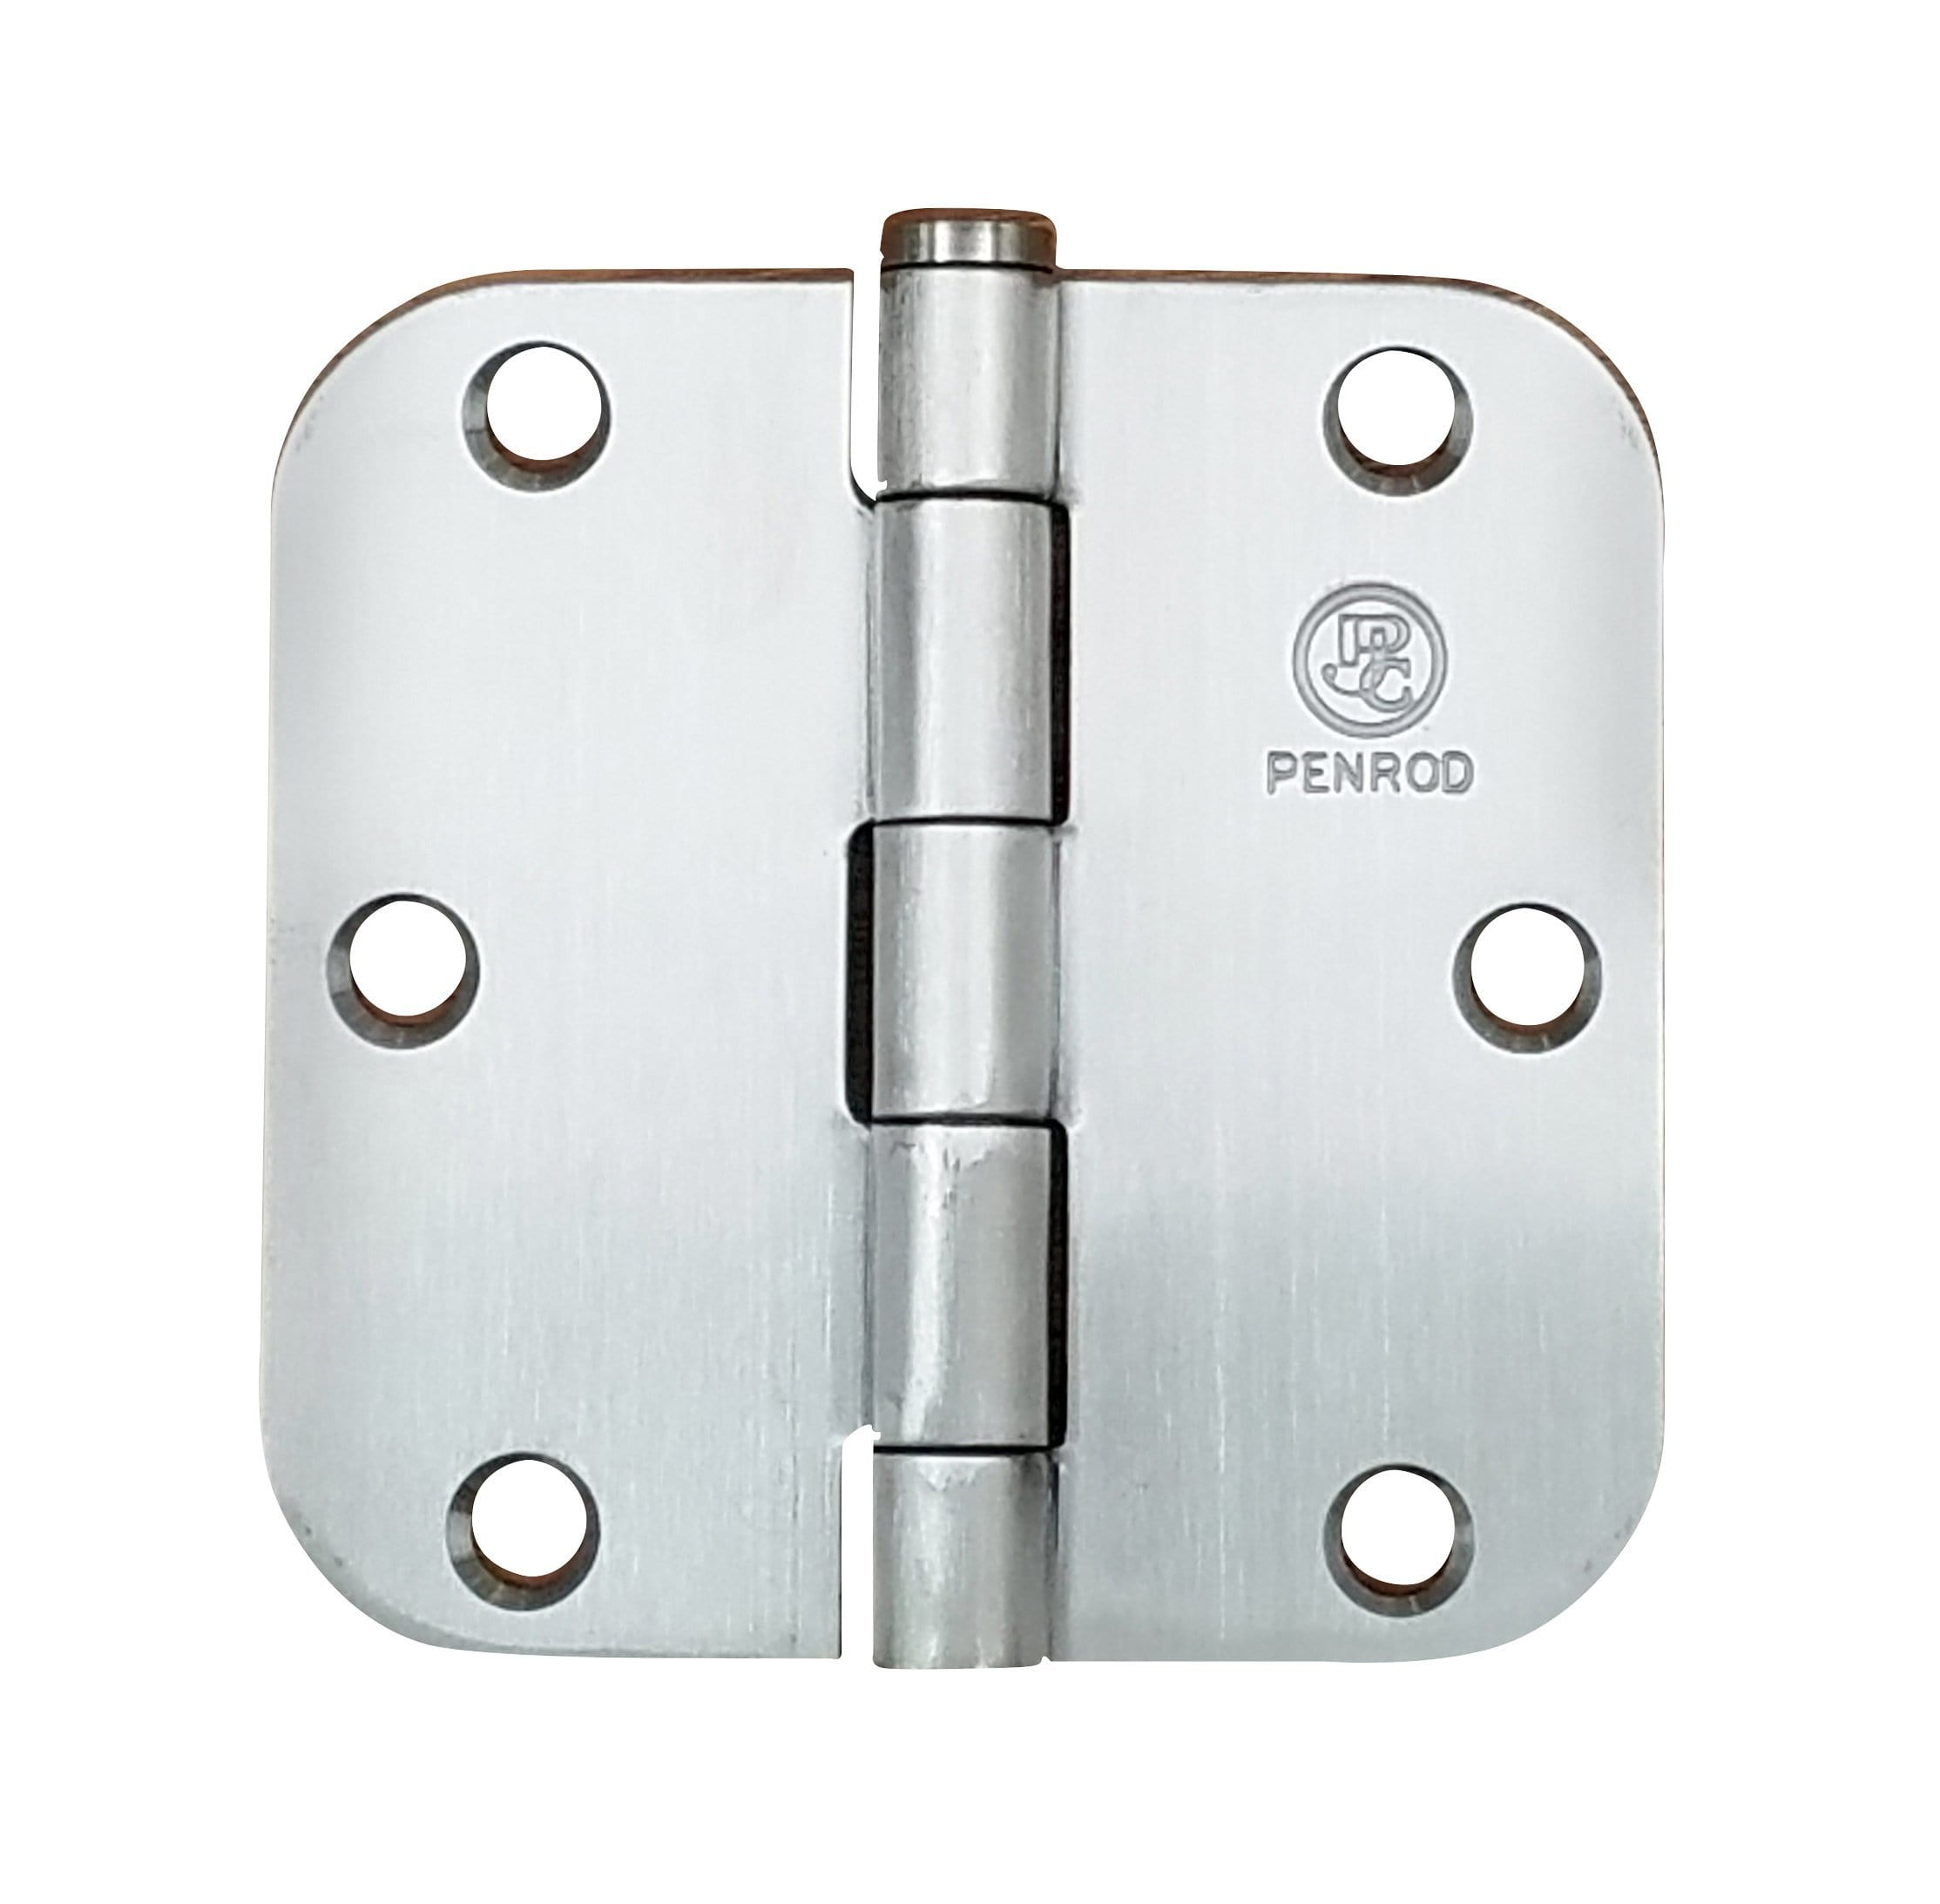 "Residential Penrod Door Hinges - Plain Bearing Aluminum Finish - Door Hinges - 3.5"" Inches with 5/8"" Radius - 2 Pack"